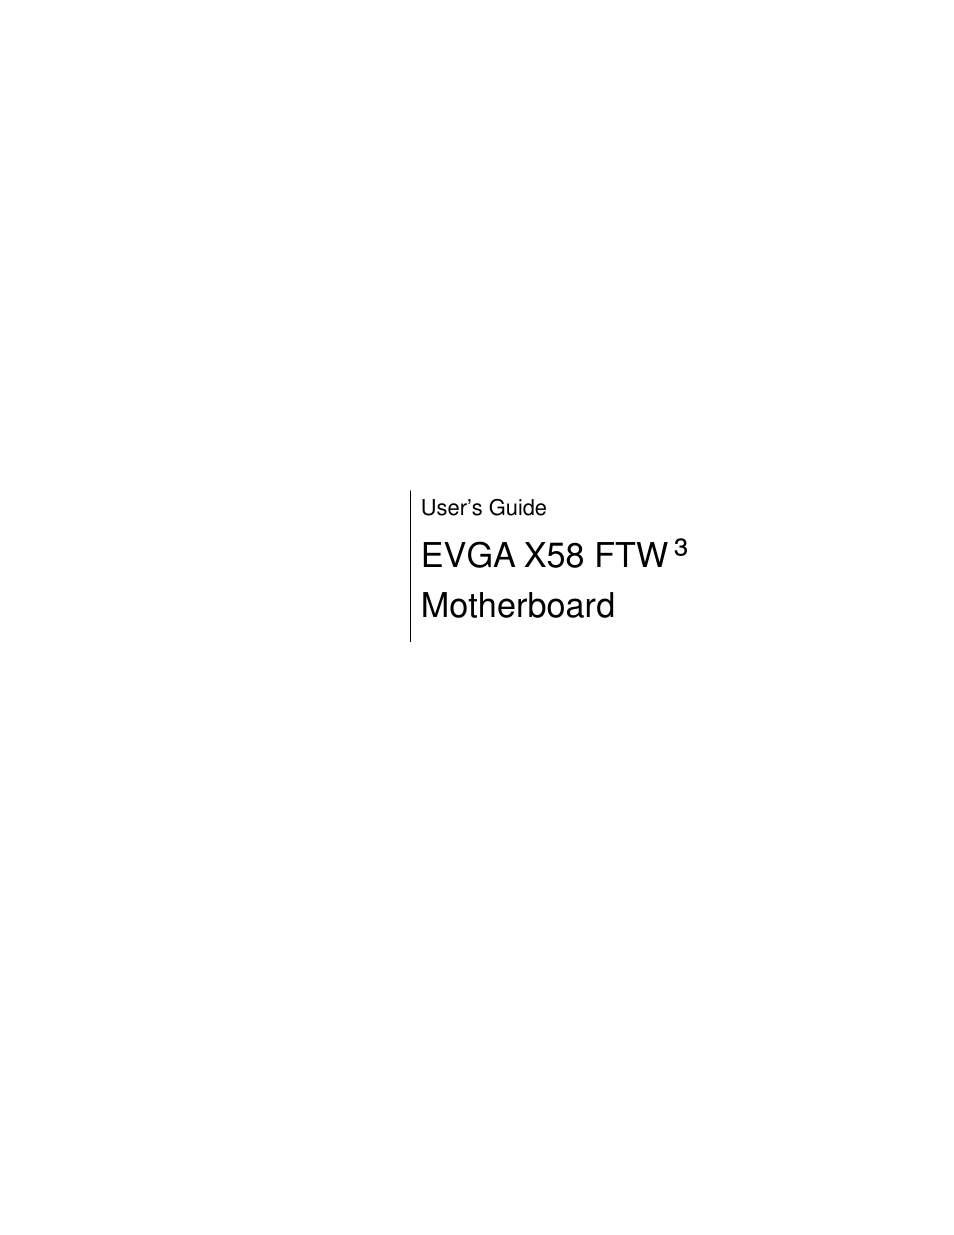 evga x58 ftw user manual 77 pages also for x58 ftw3 rh manualsdir com evga x58 ftw3 motherboard drivers